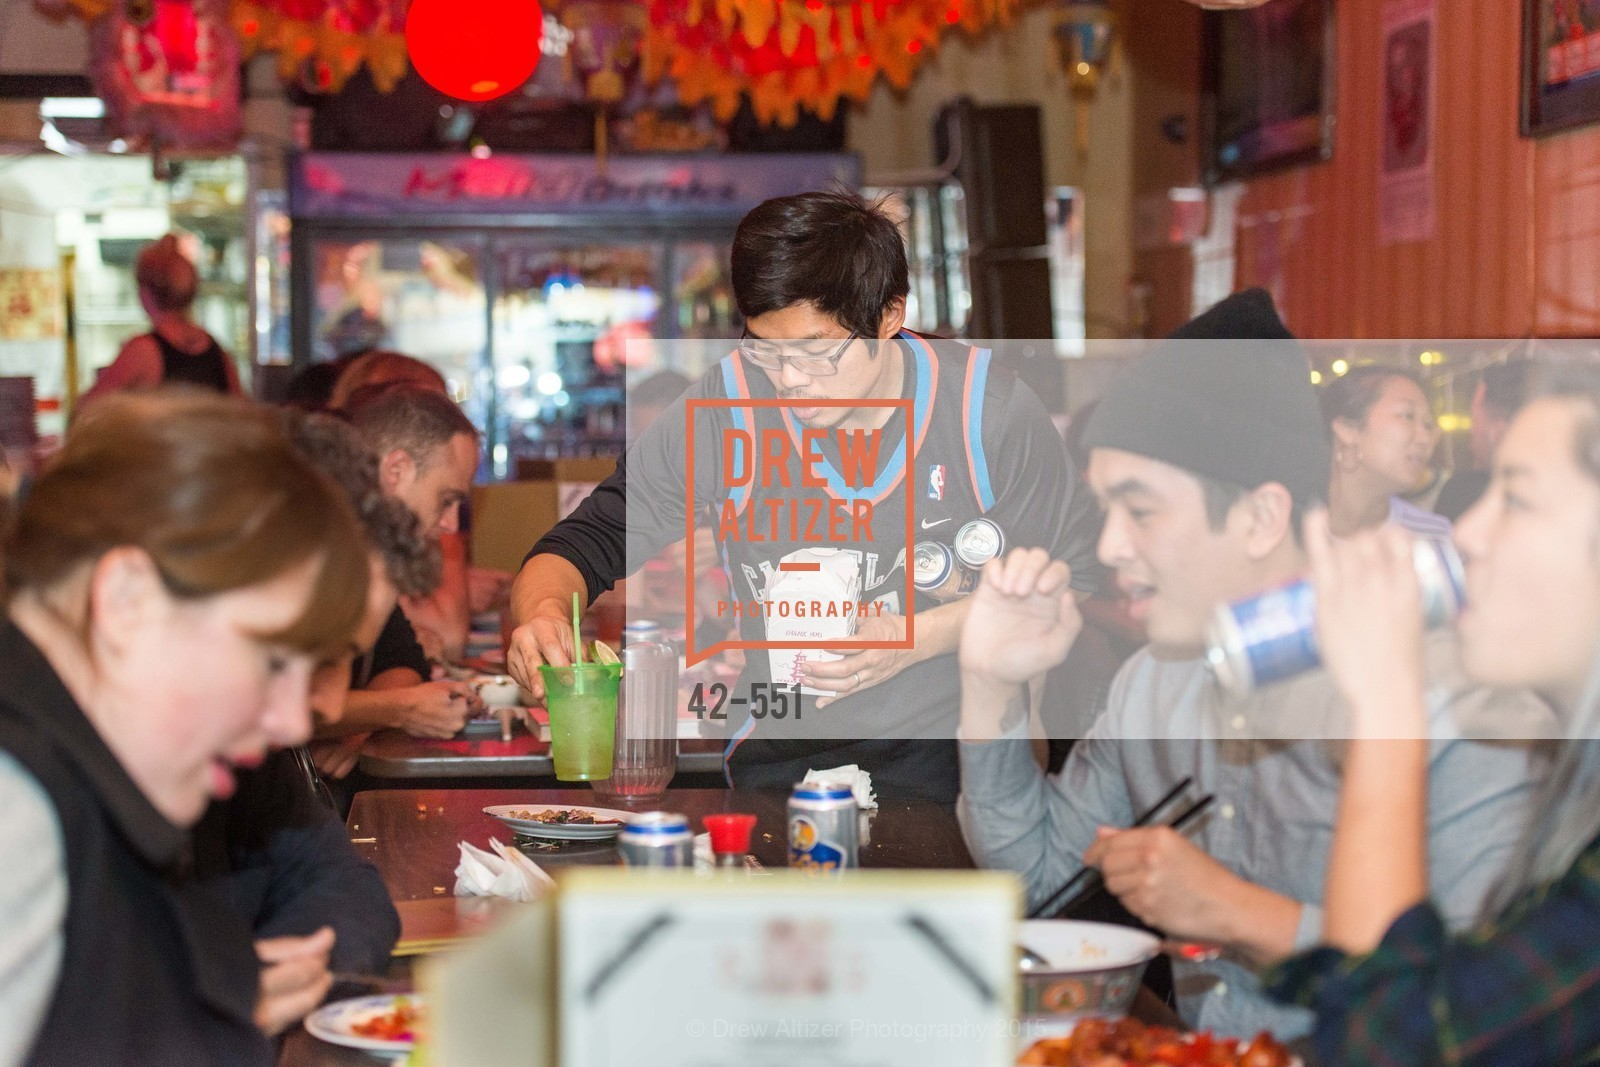 Extras, Mission Chinese Food Cookbook Release Dinner, November 16th, 2015, Photo,Drew Altizer, Drew Altizer Photography, full-service agency, private events, San Francisco photographer, photographer california